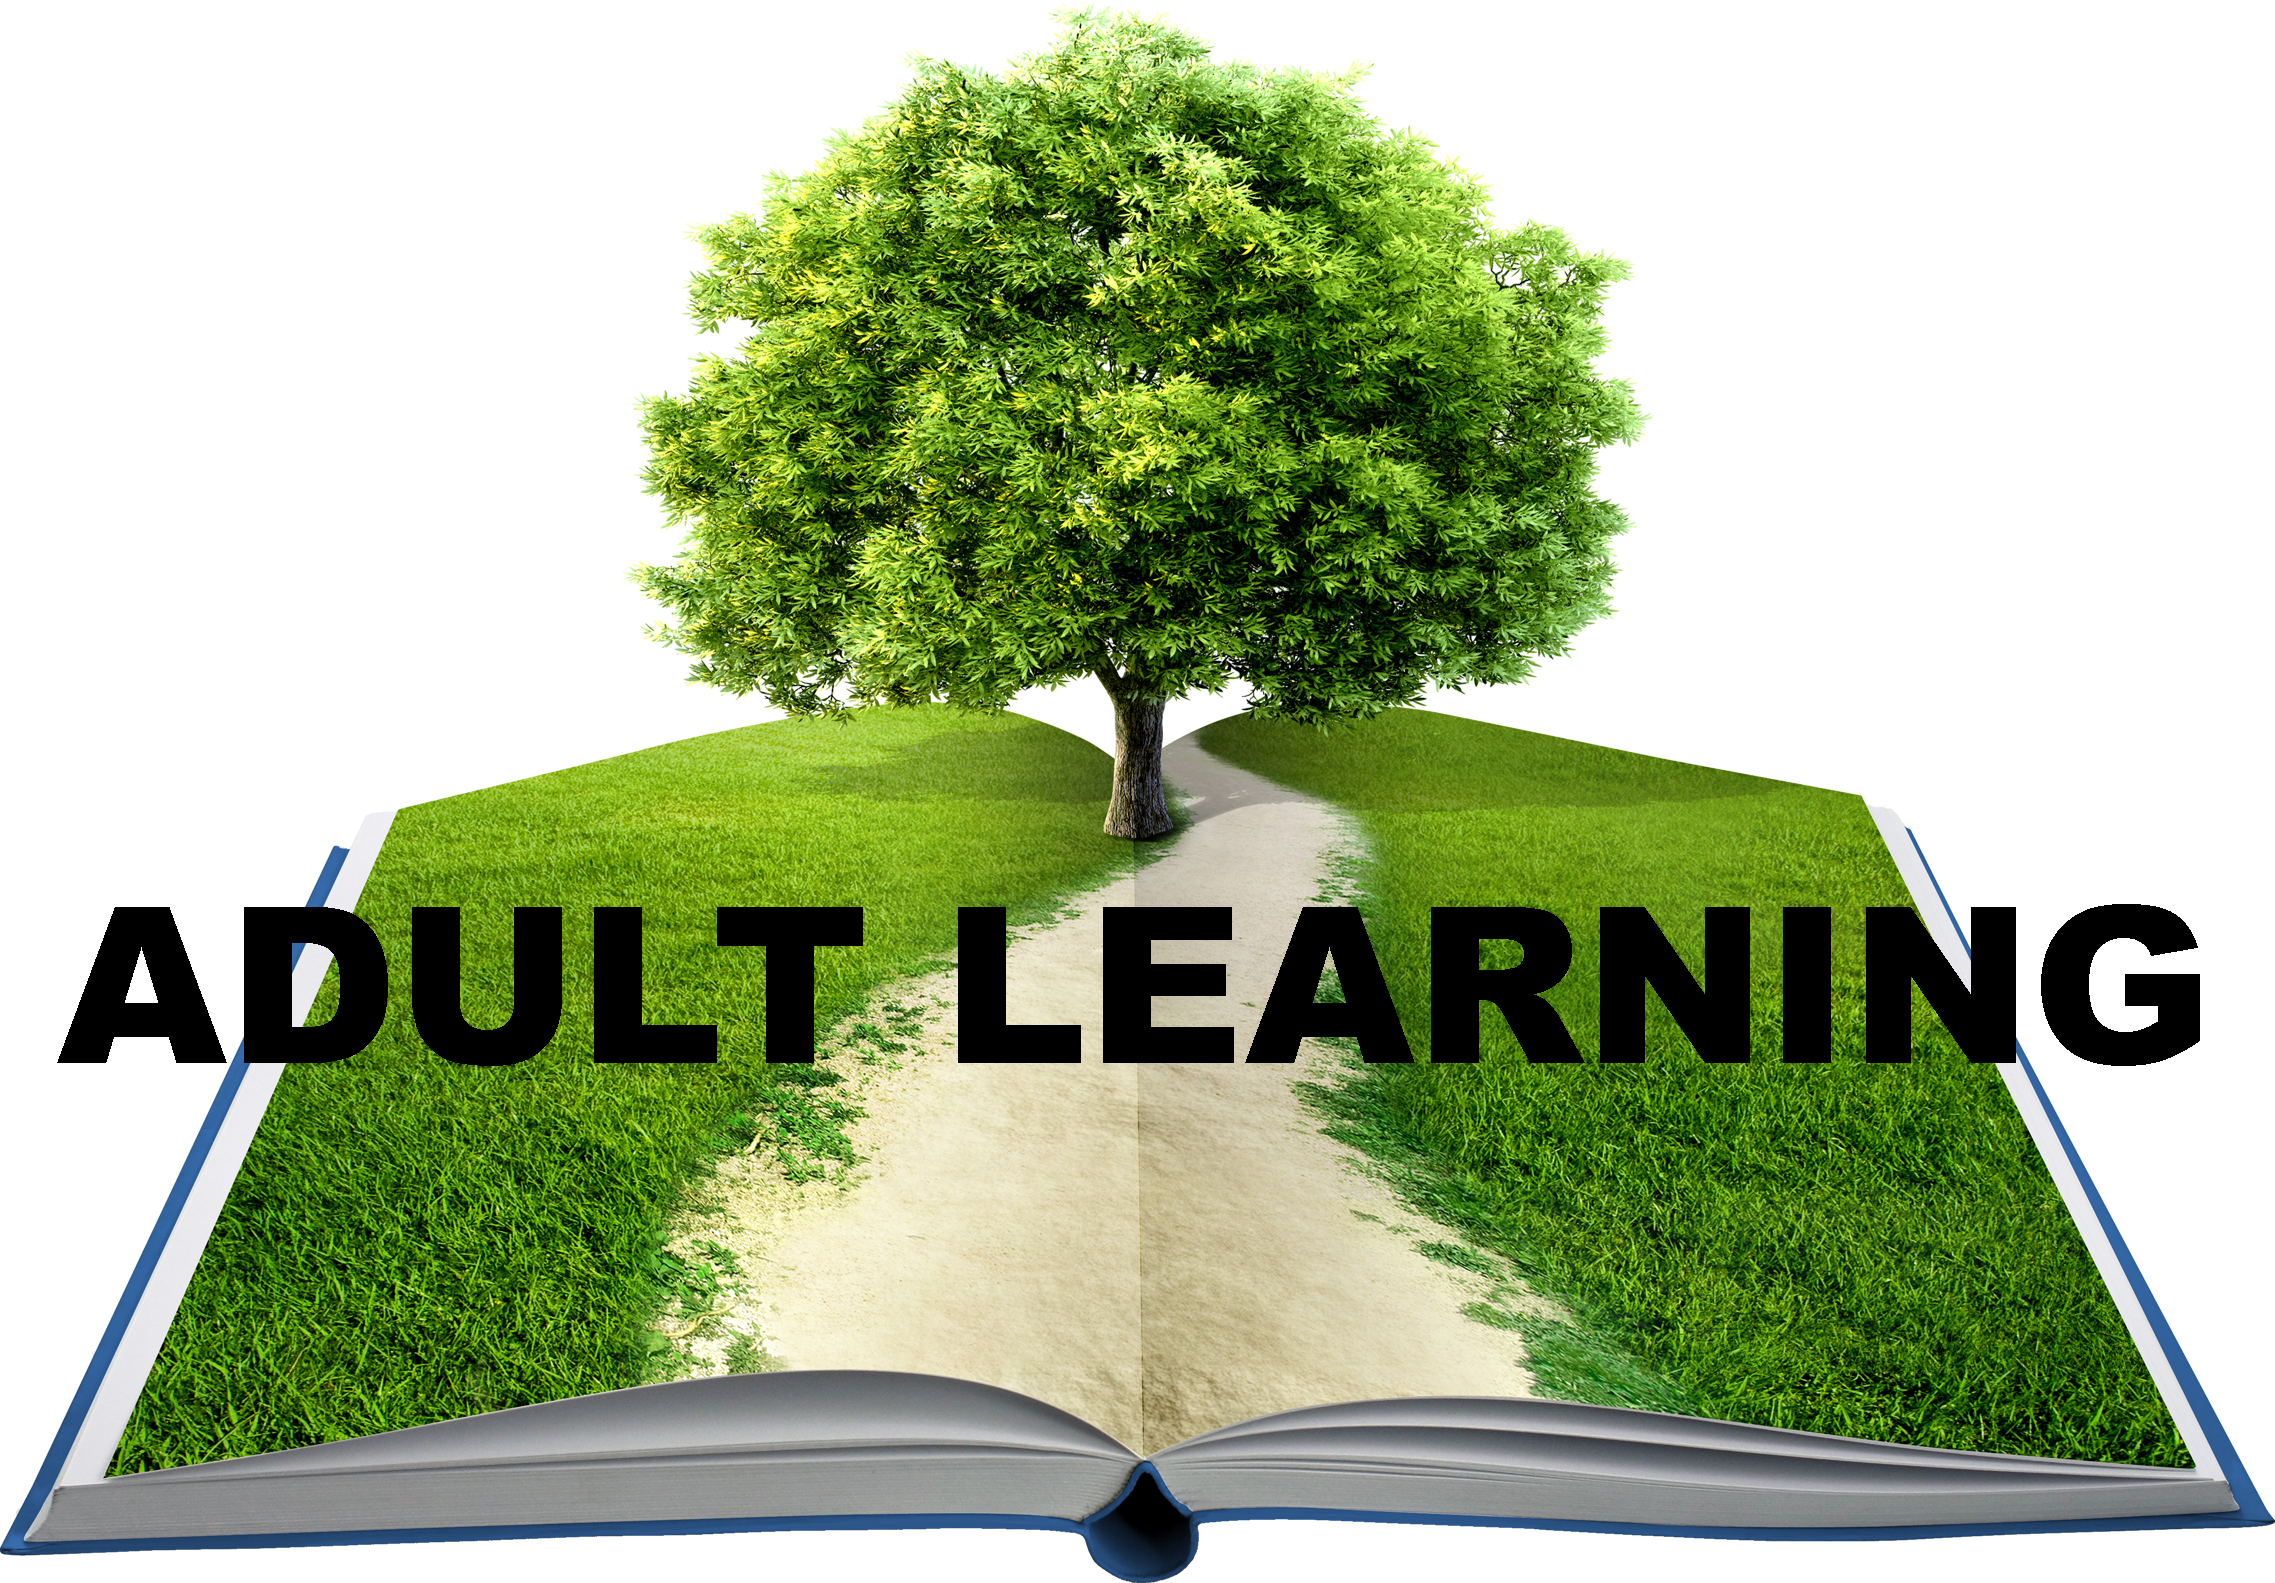 AdultLearning_OnlineImage_Transparent_Reduced.png